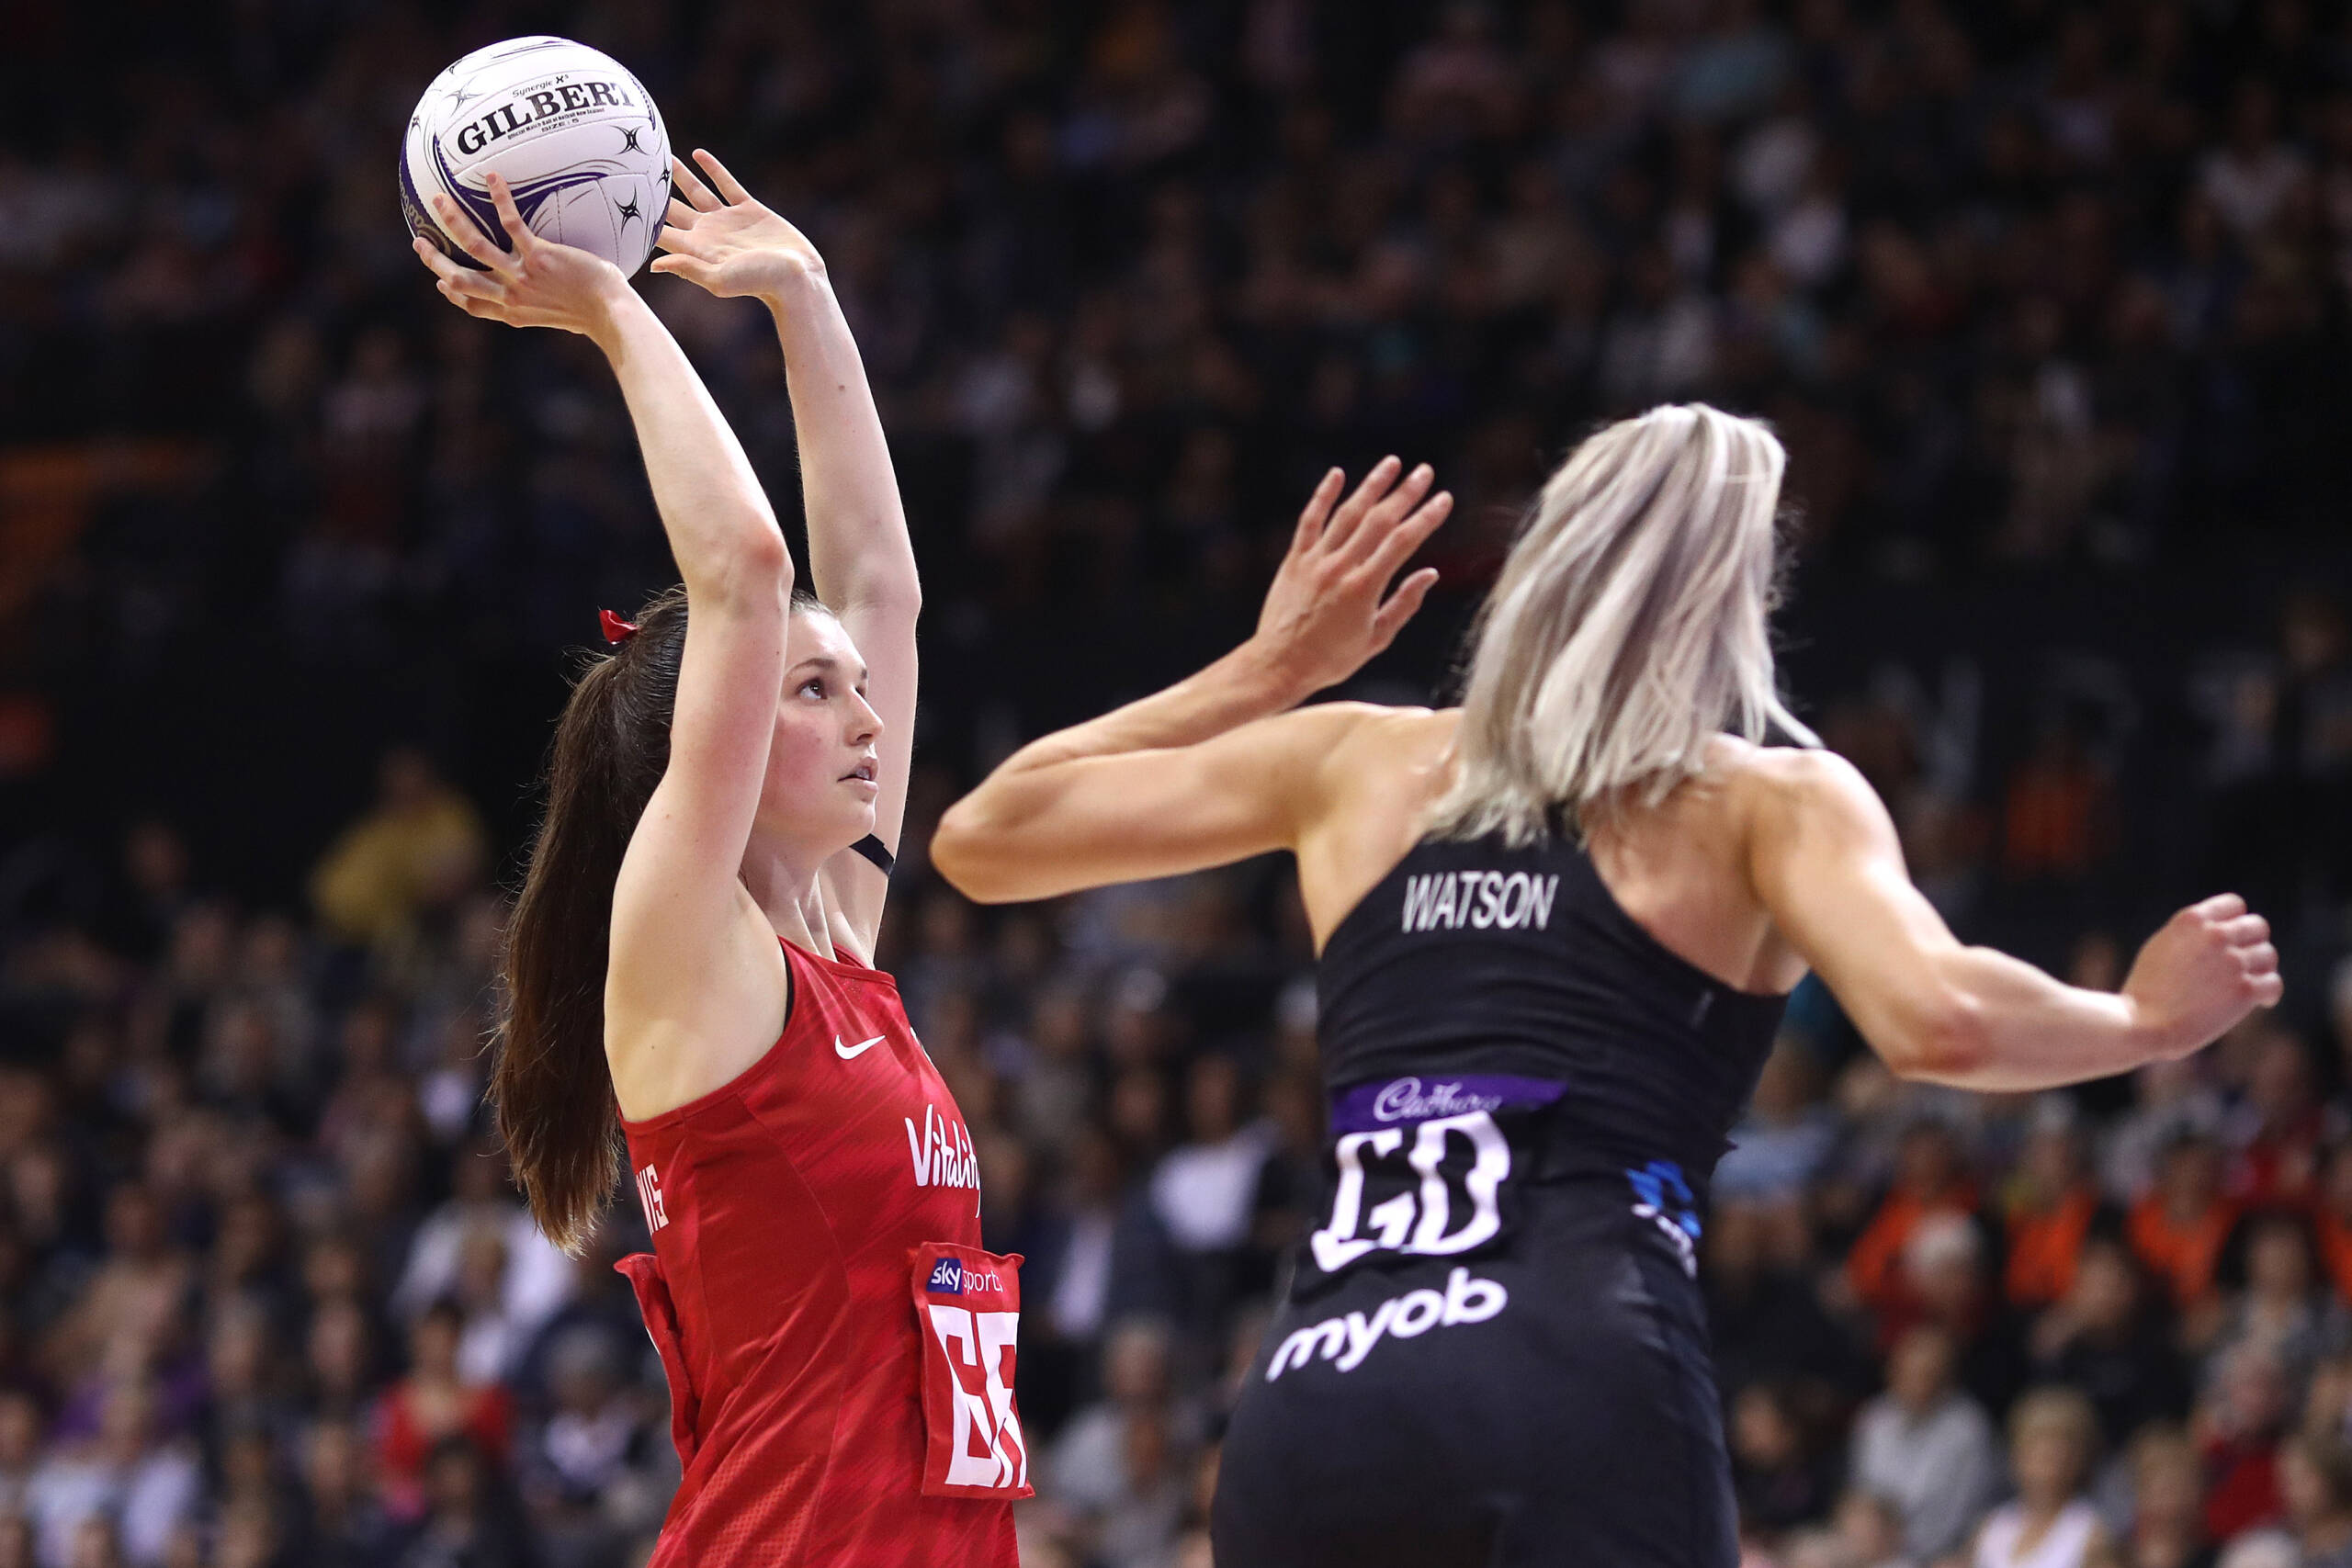 Sophie Drakeford-Lewis of the Vitality Roses and Team Bath Netball.